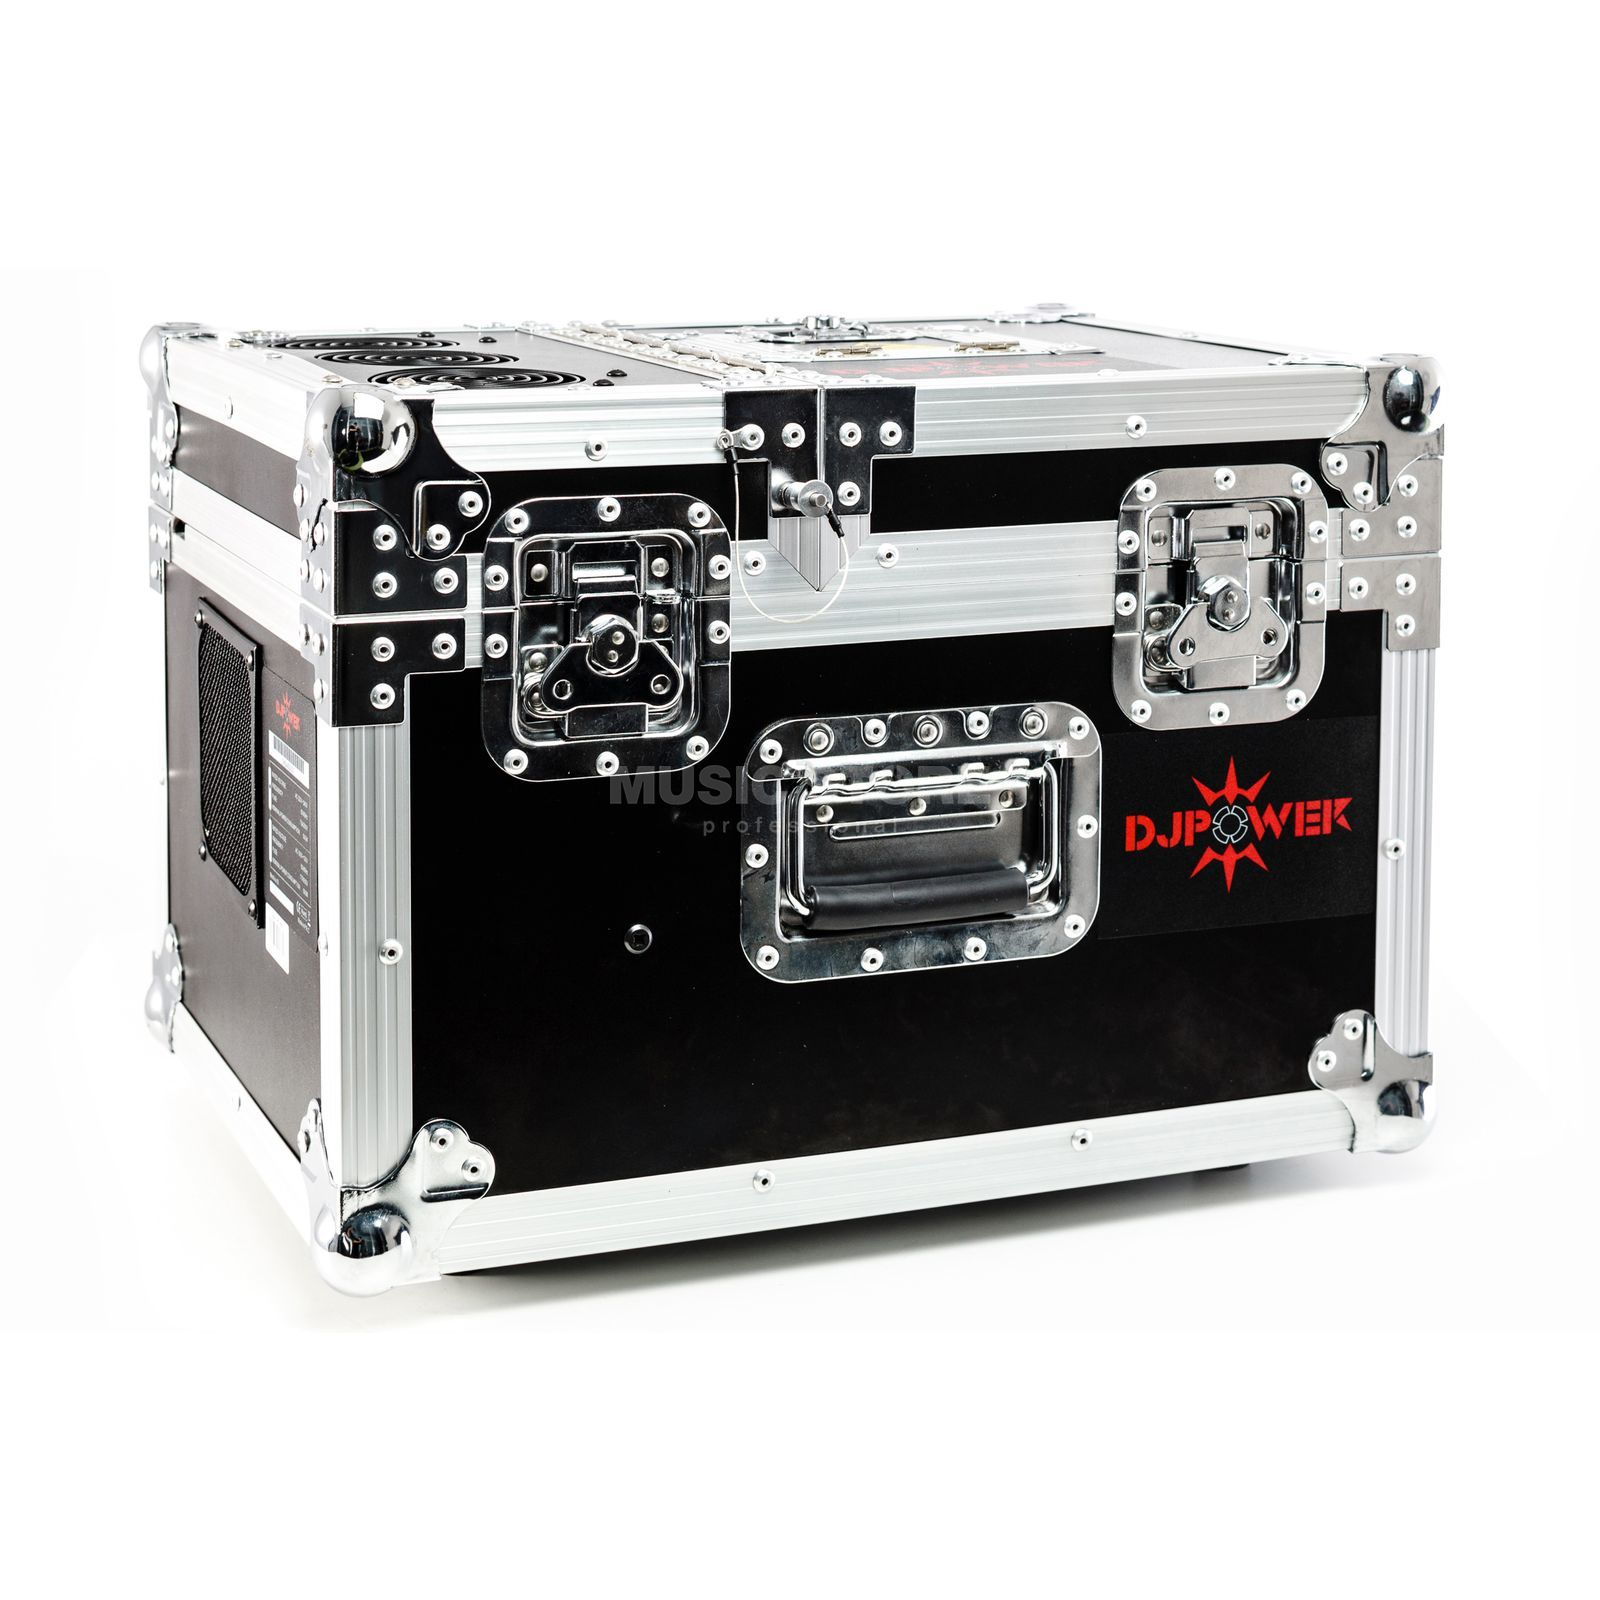 DJ Power DHZ-660 Hazer, 500 Watt, with Case Produktbillede